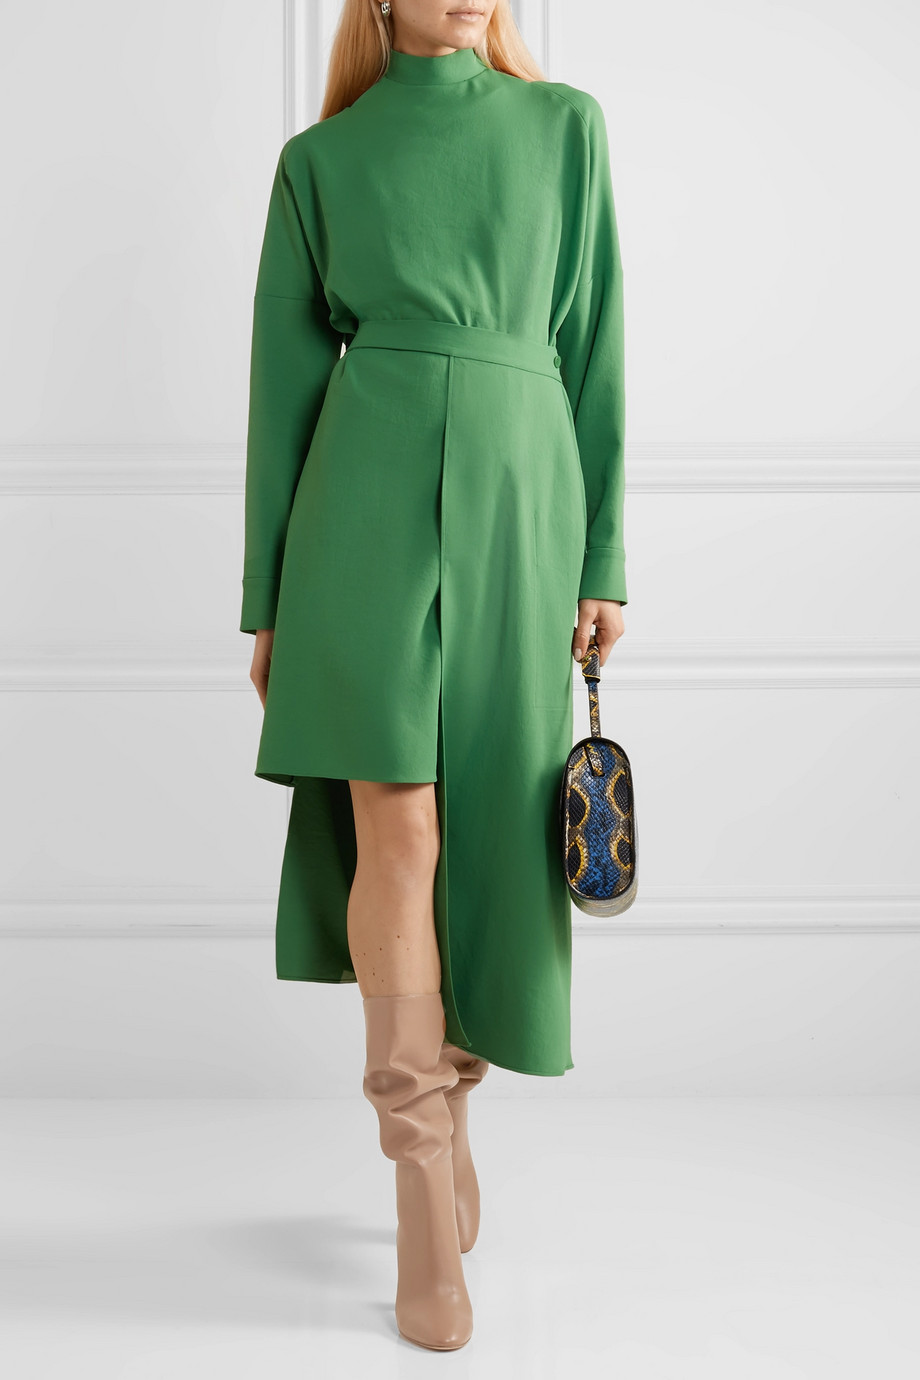 Spring Boots Trend 2019 - Boots with skirts Gianvito Rossi